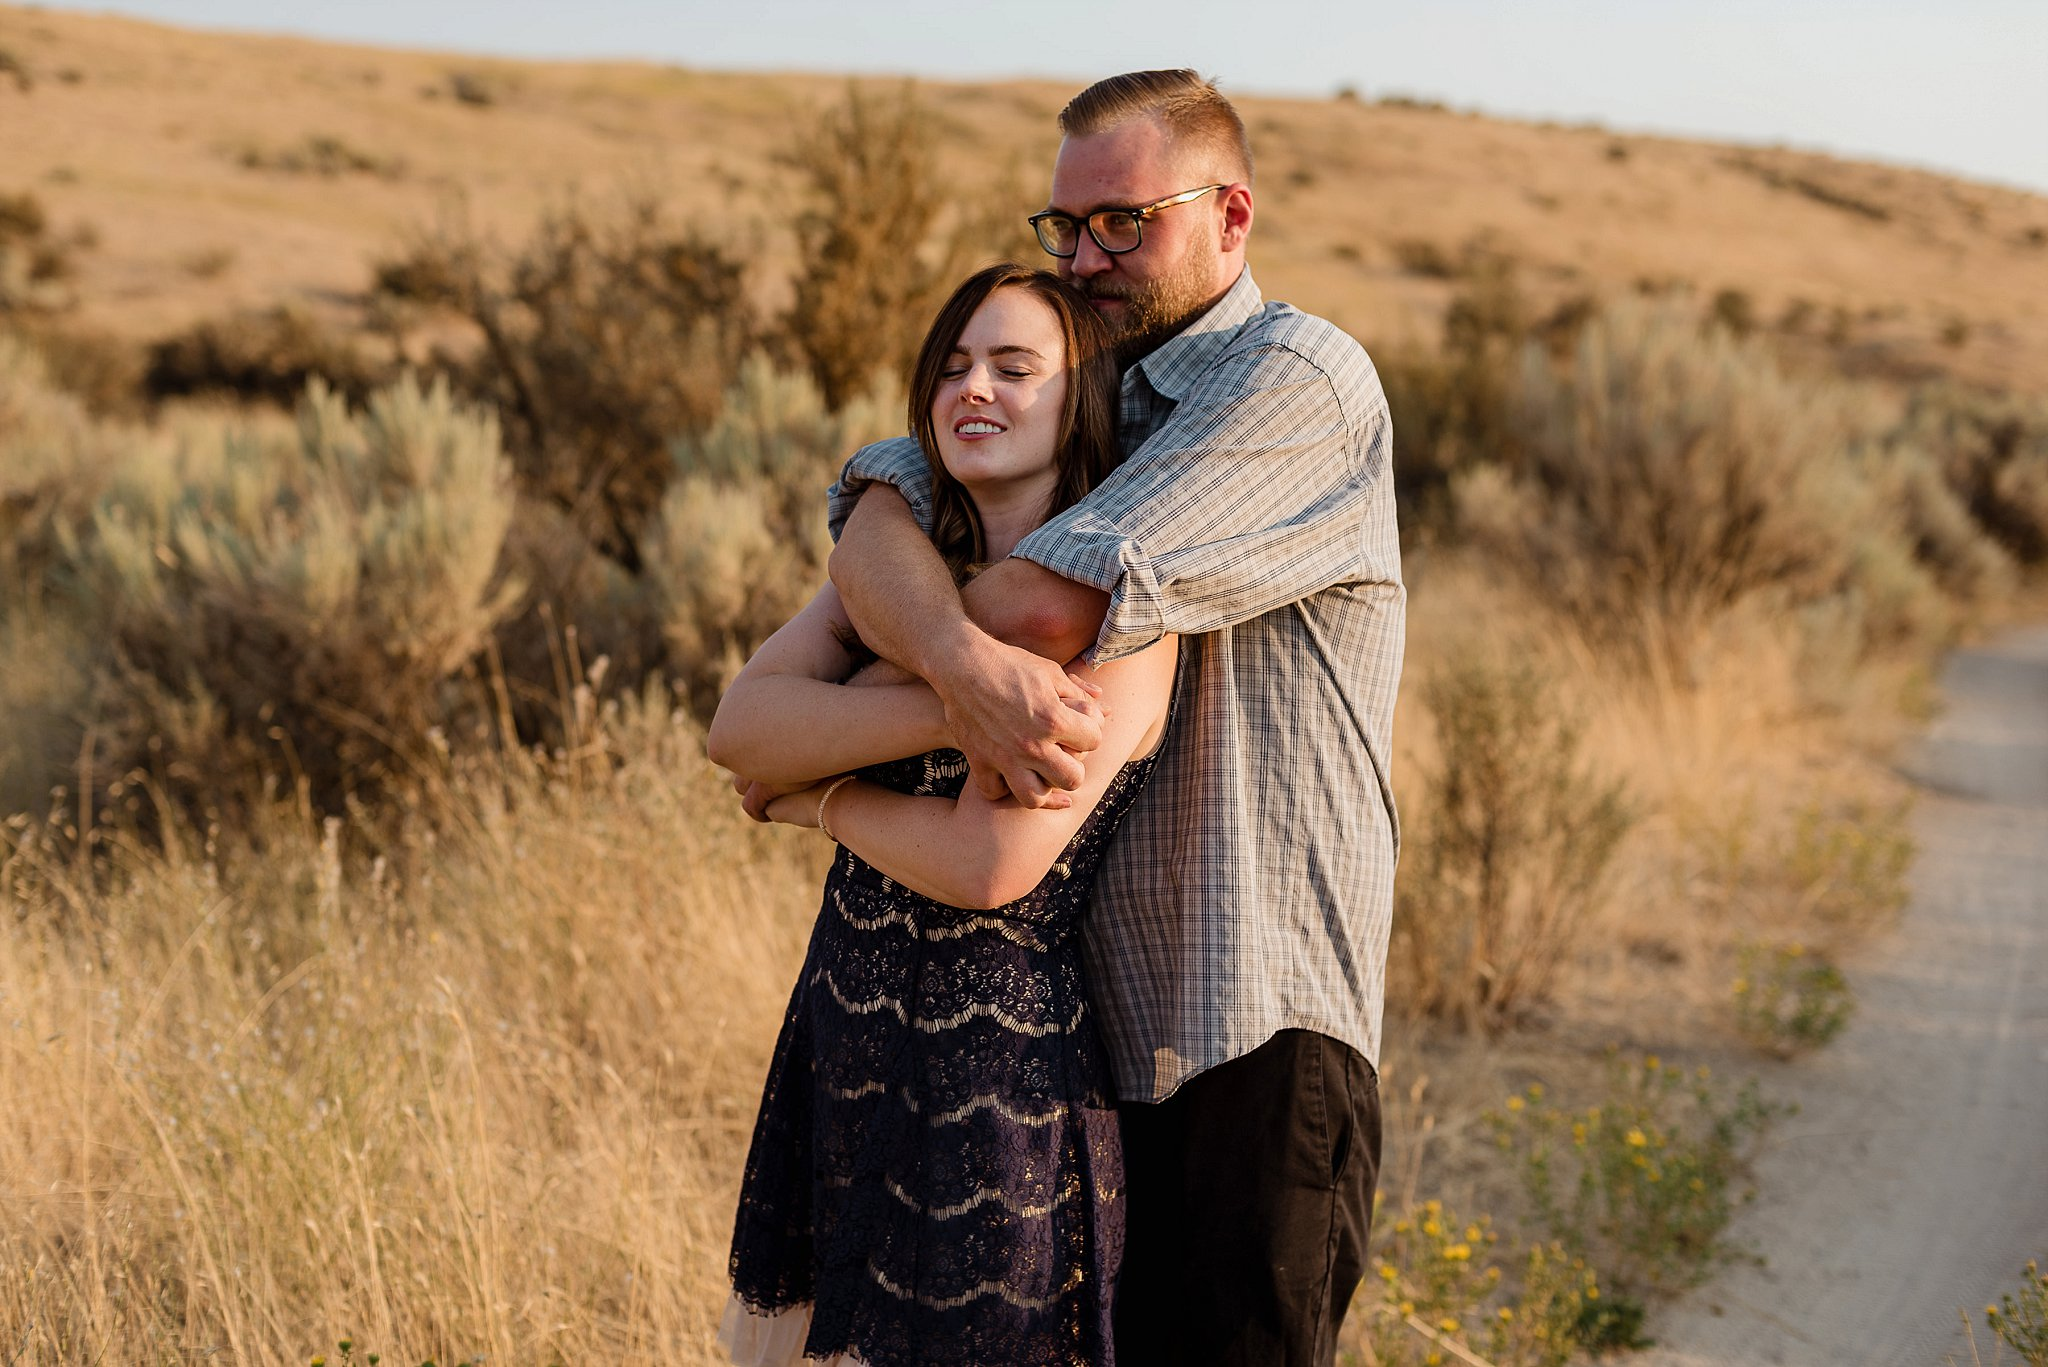 Zilla Photography - Boise Foothills Date Night Couple Session-3_SM.jpg